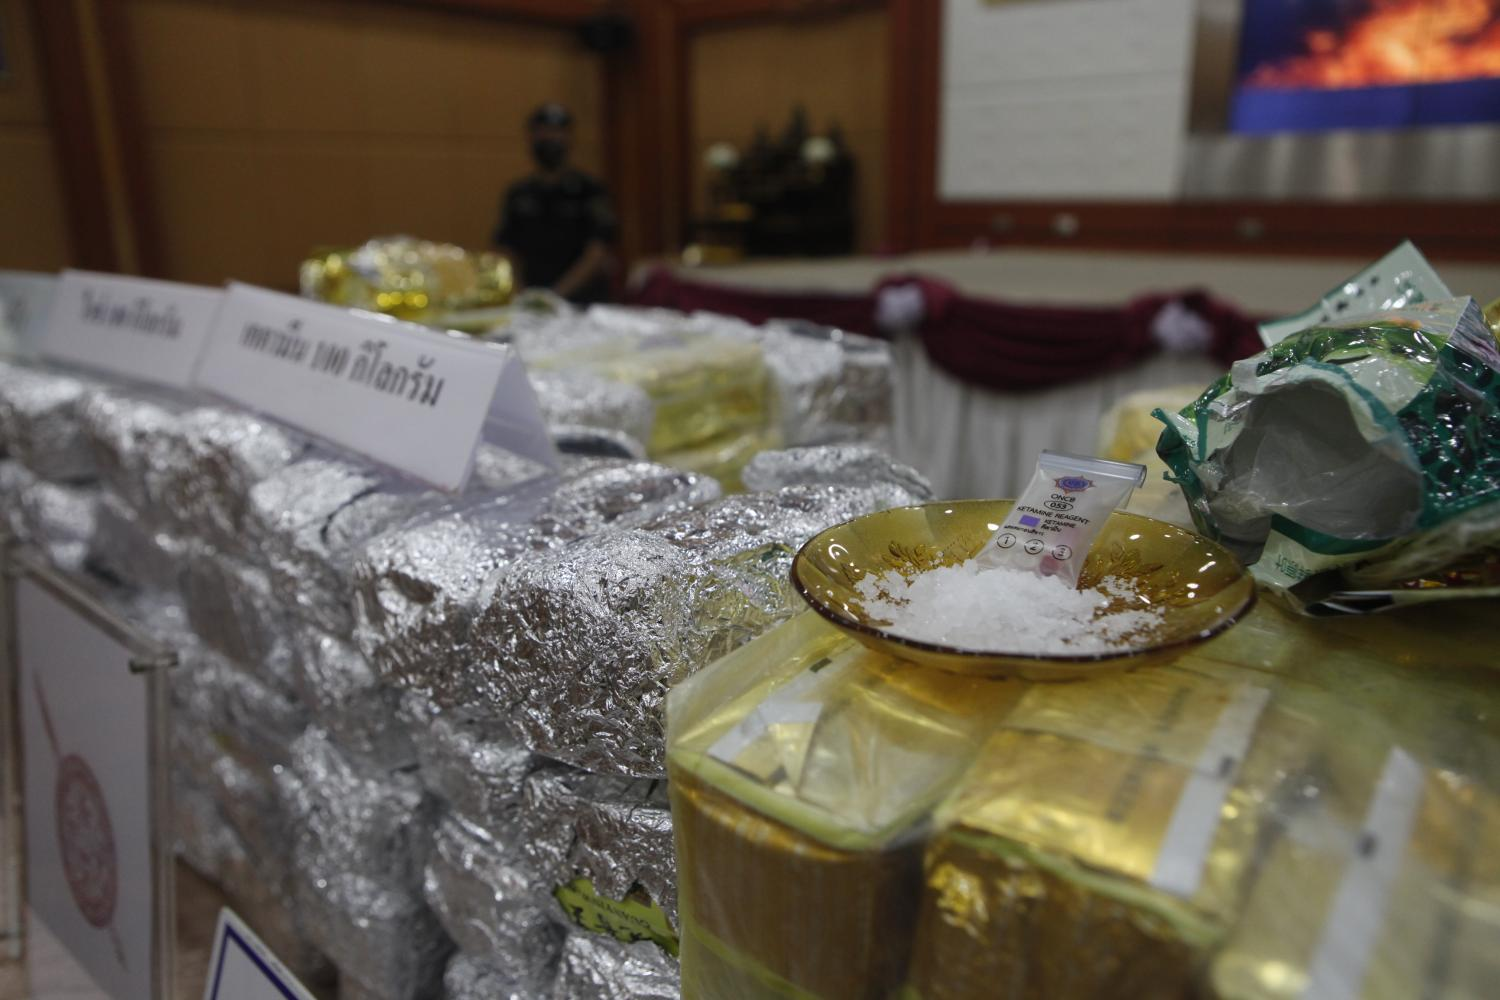 Confiscated synthetic drugs, including 167 kilogrammes of ketamine as well as other popular recreational drugs, in this file photo from April 7.(Photo: Nutthawat Wicheanbut)